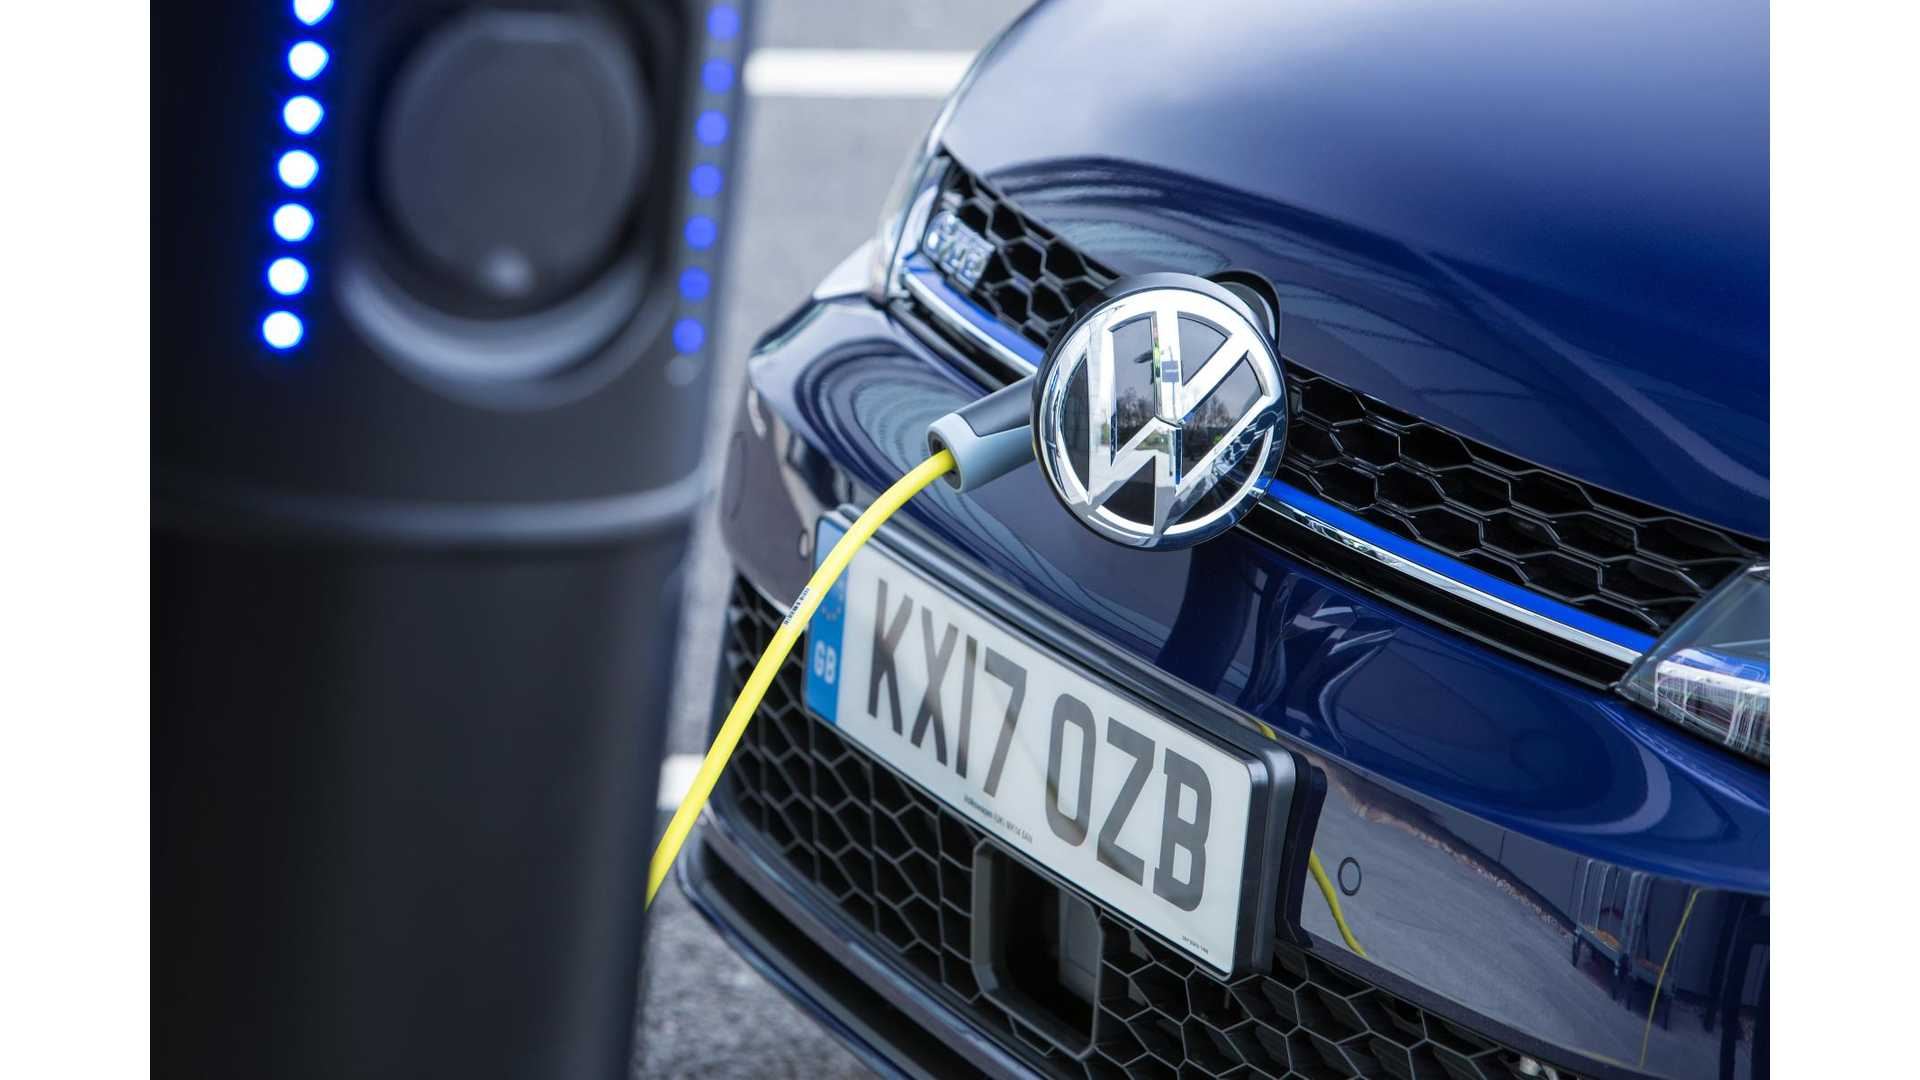 Golf Gte Test >> Volkswagen Golf Gte Test Drive Review By Fully Charged